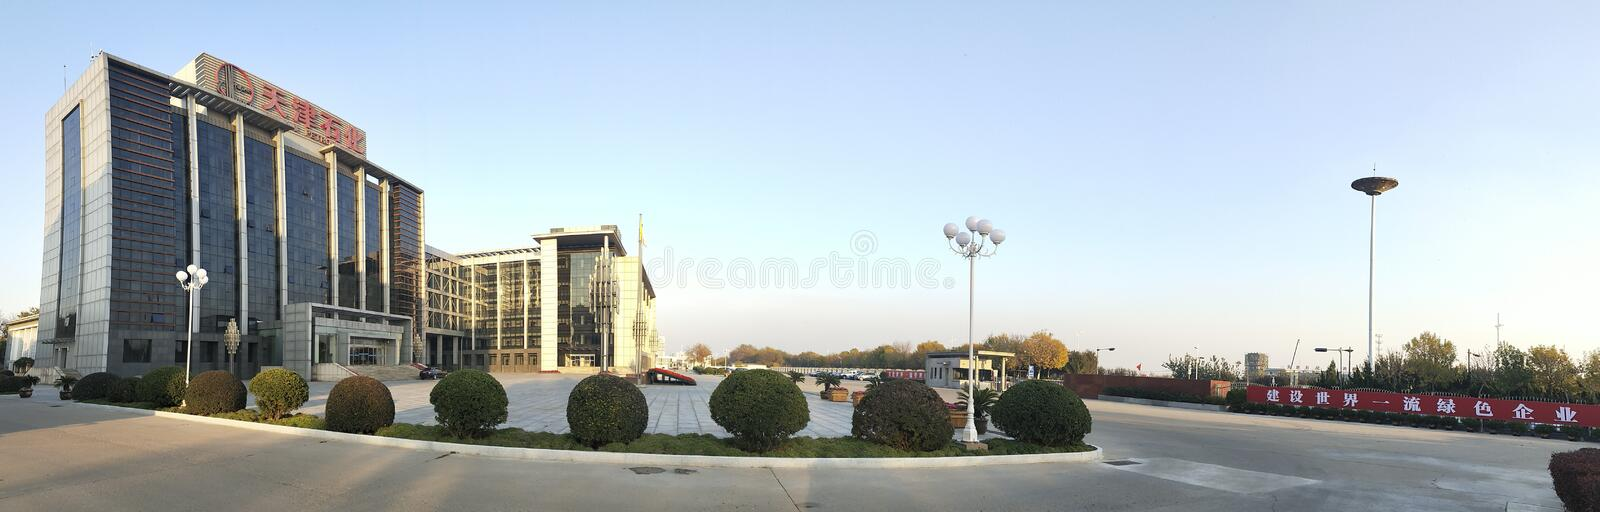 Exterior view of Tianjin Petrochemical Office Building royalty free stock photos